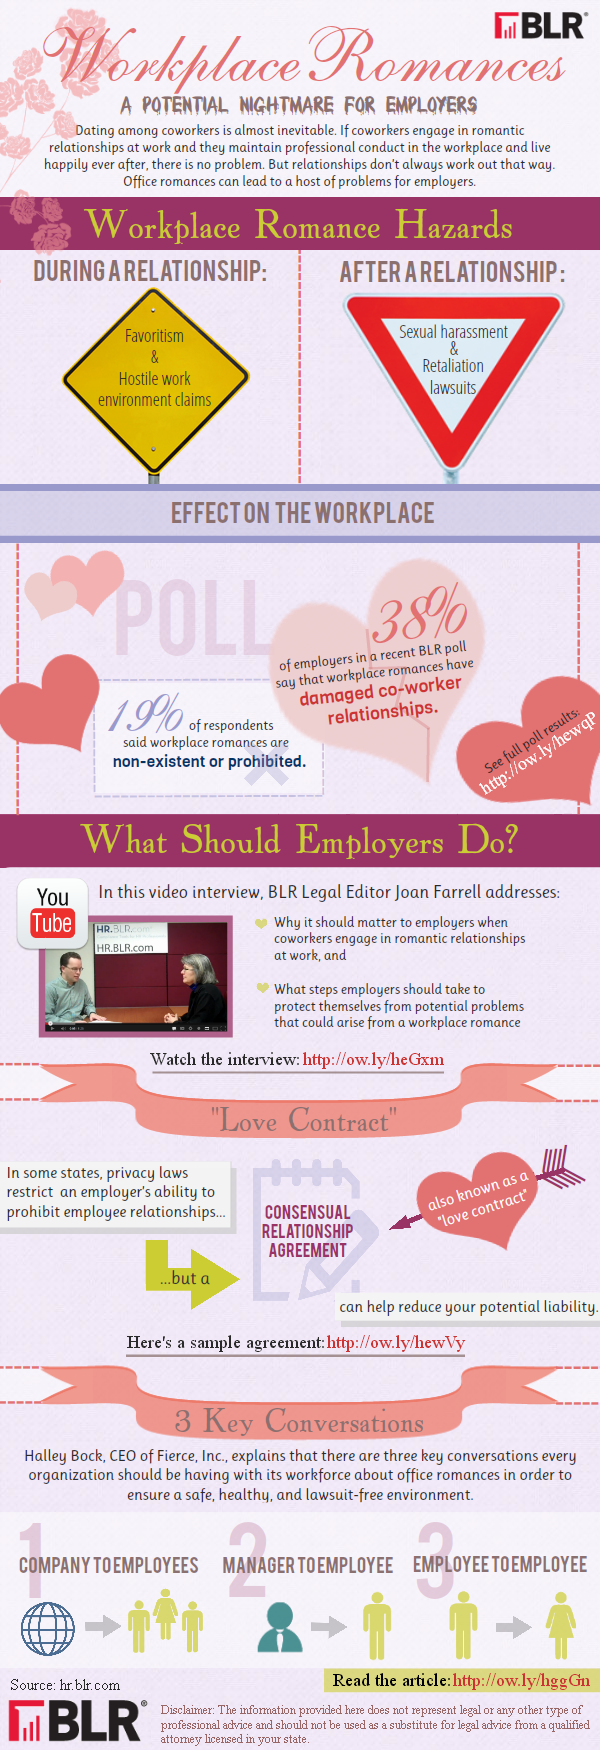 BLR Workplace Romances Infographic